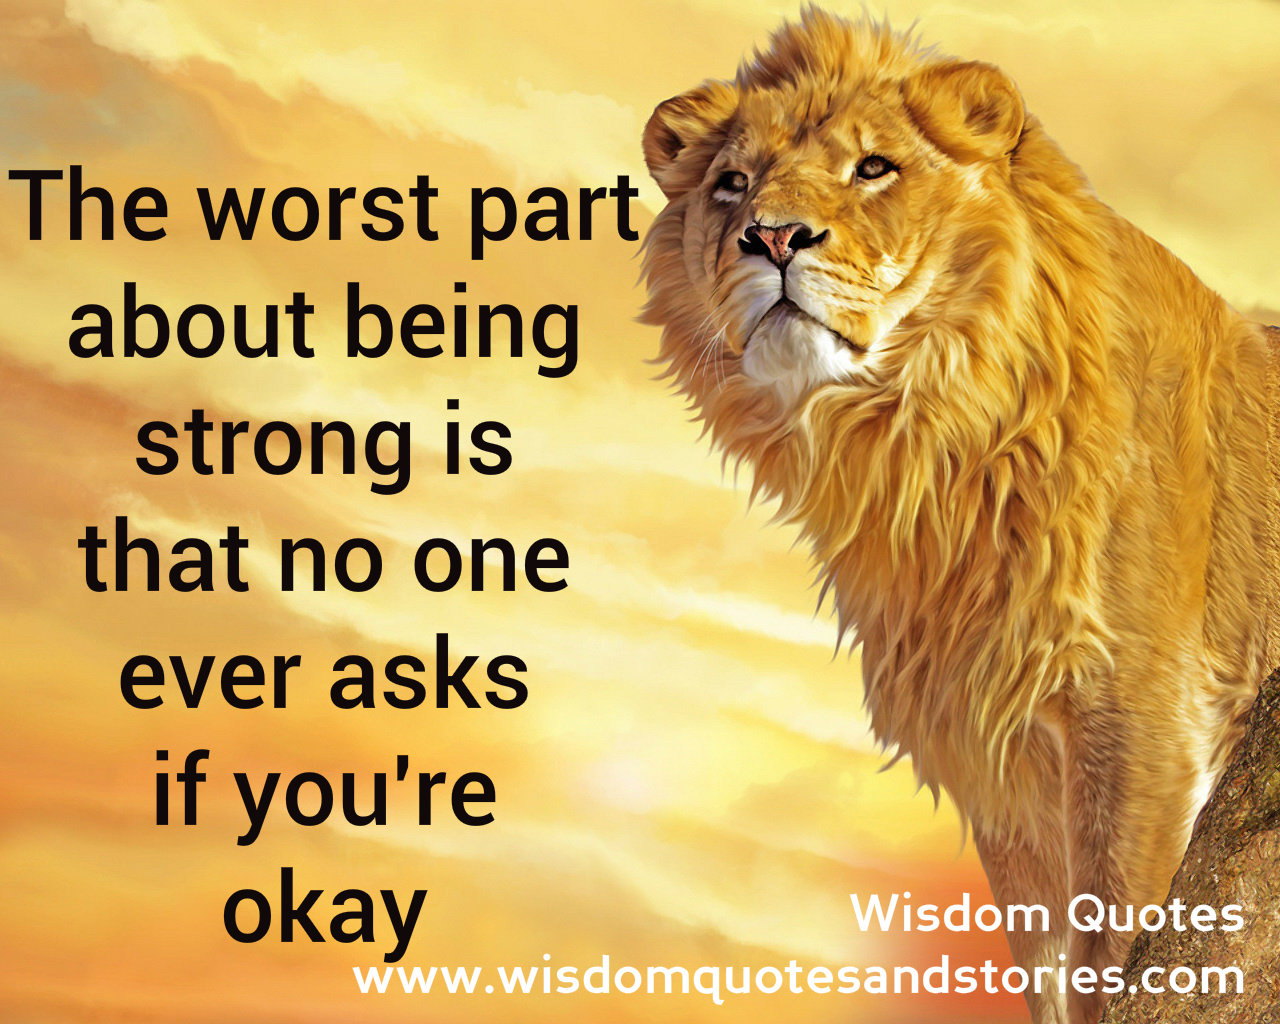 Quotes On Being Strong Worst Part About Being Strong  Wisdom Quotes & Stories